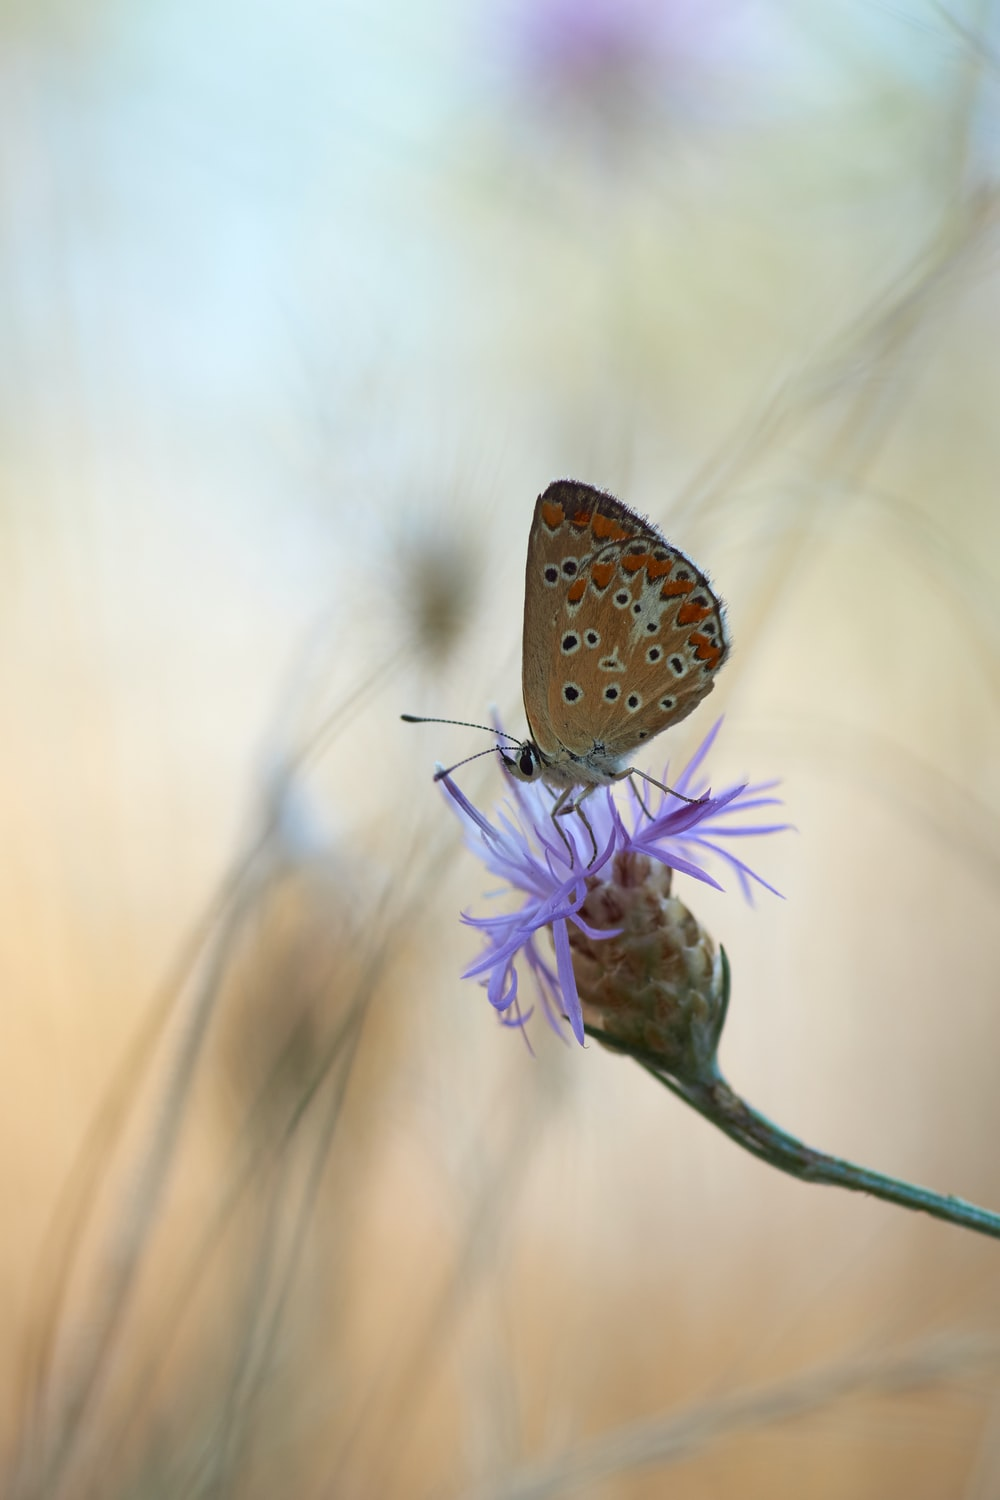 brown and white butterfly perched on purple flower in close up photography during daytime